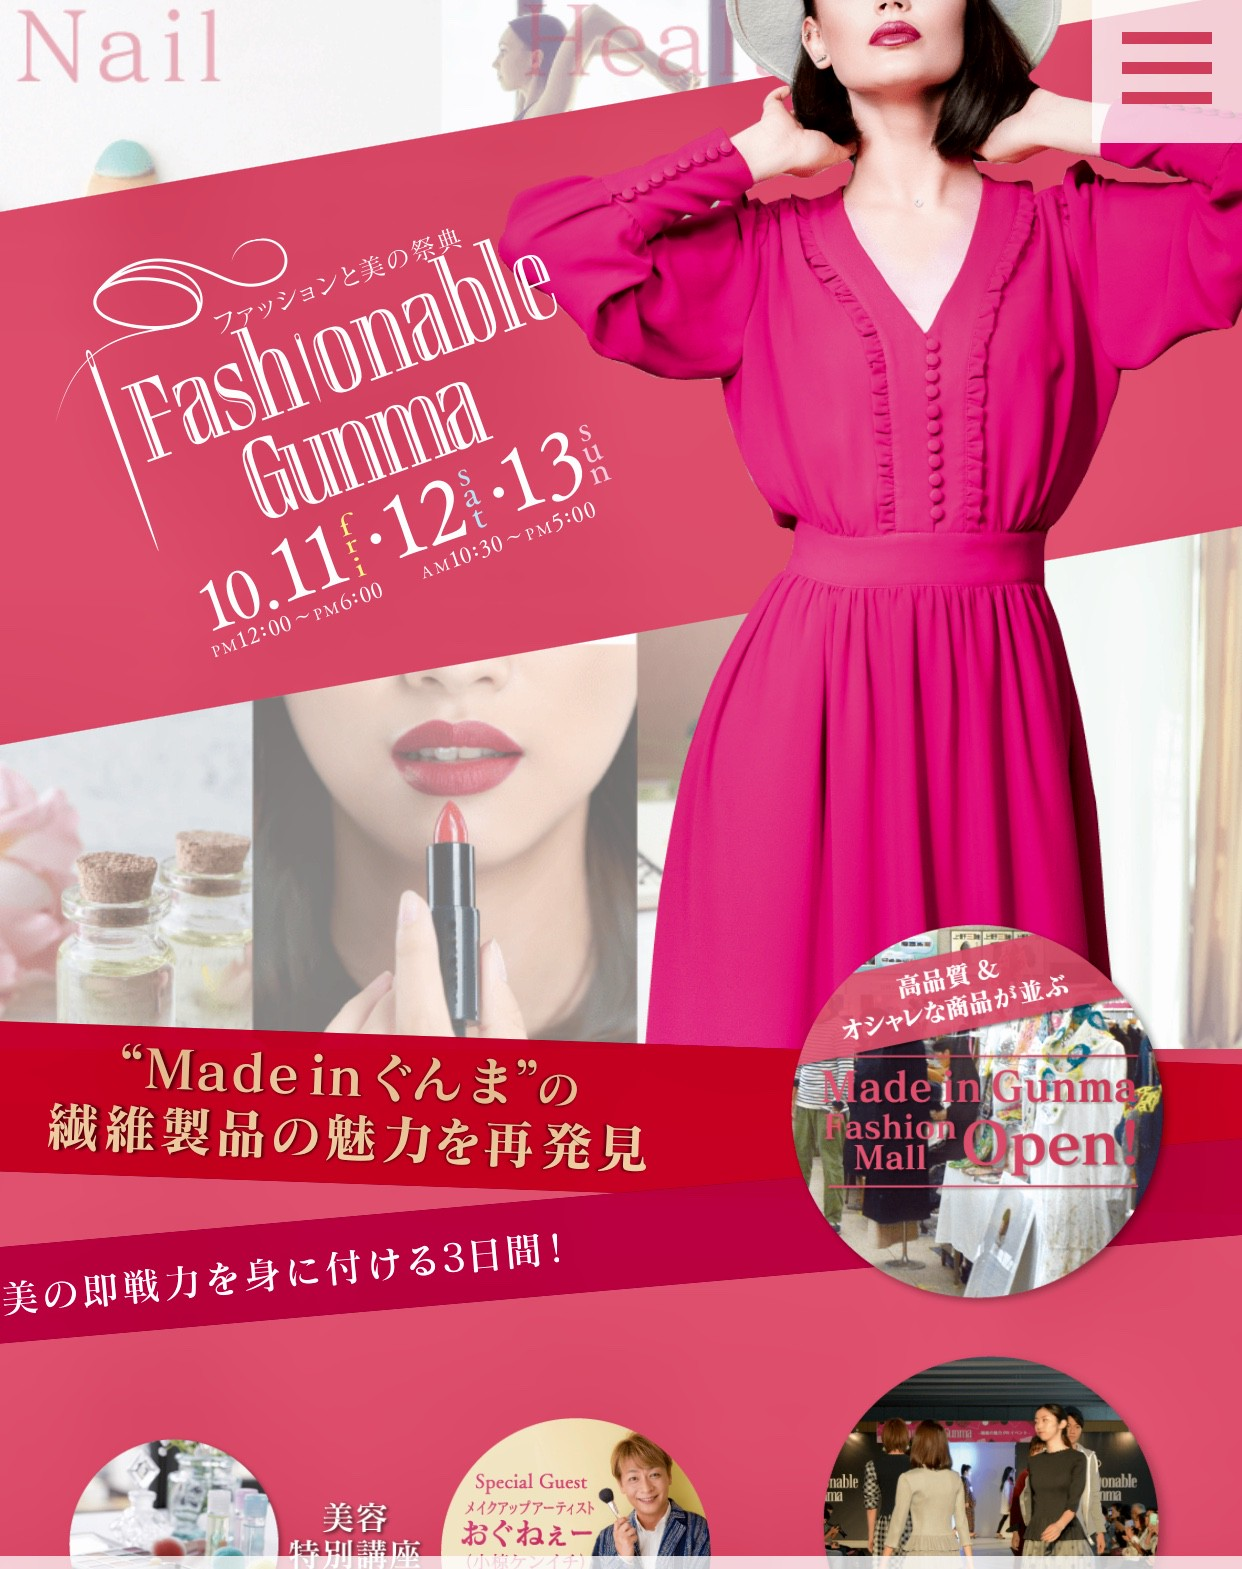 Fashionable Gunma!10/11.12.13 in群馬県庁